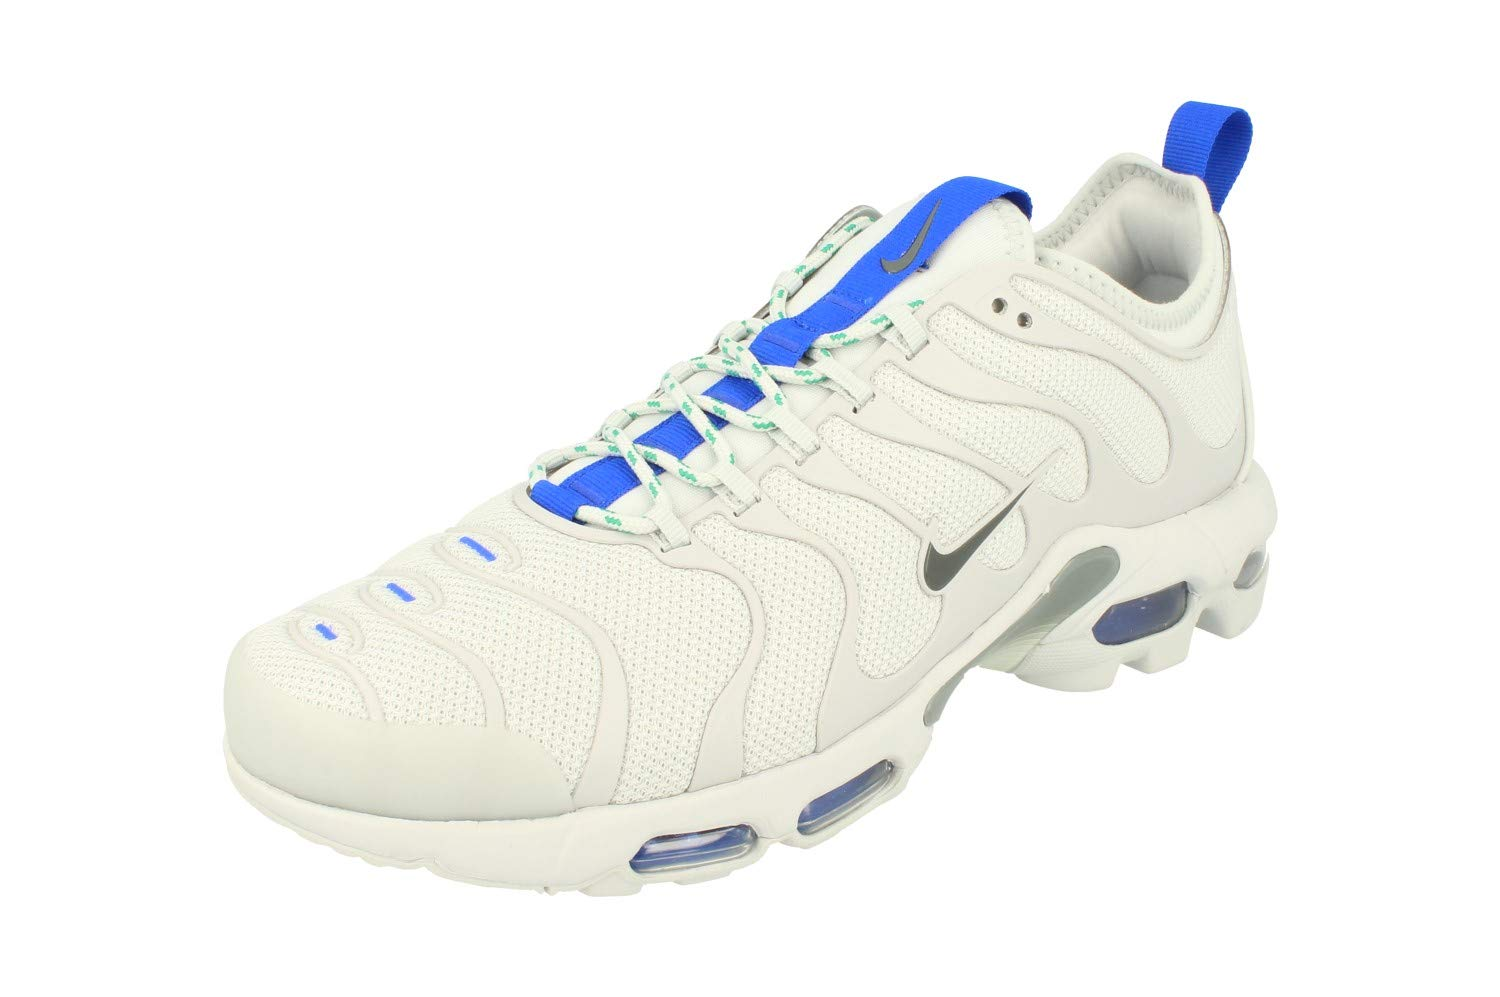 d8248c5976 Nike Air Max Plus TN Ultra Mens Running Trainers AR4234 Sneakers Shoes (UK  7 US 8 EU 41, Pure Platinum Cool Grey 001)